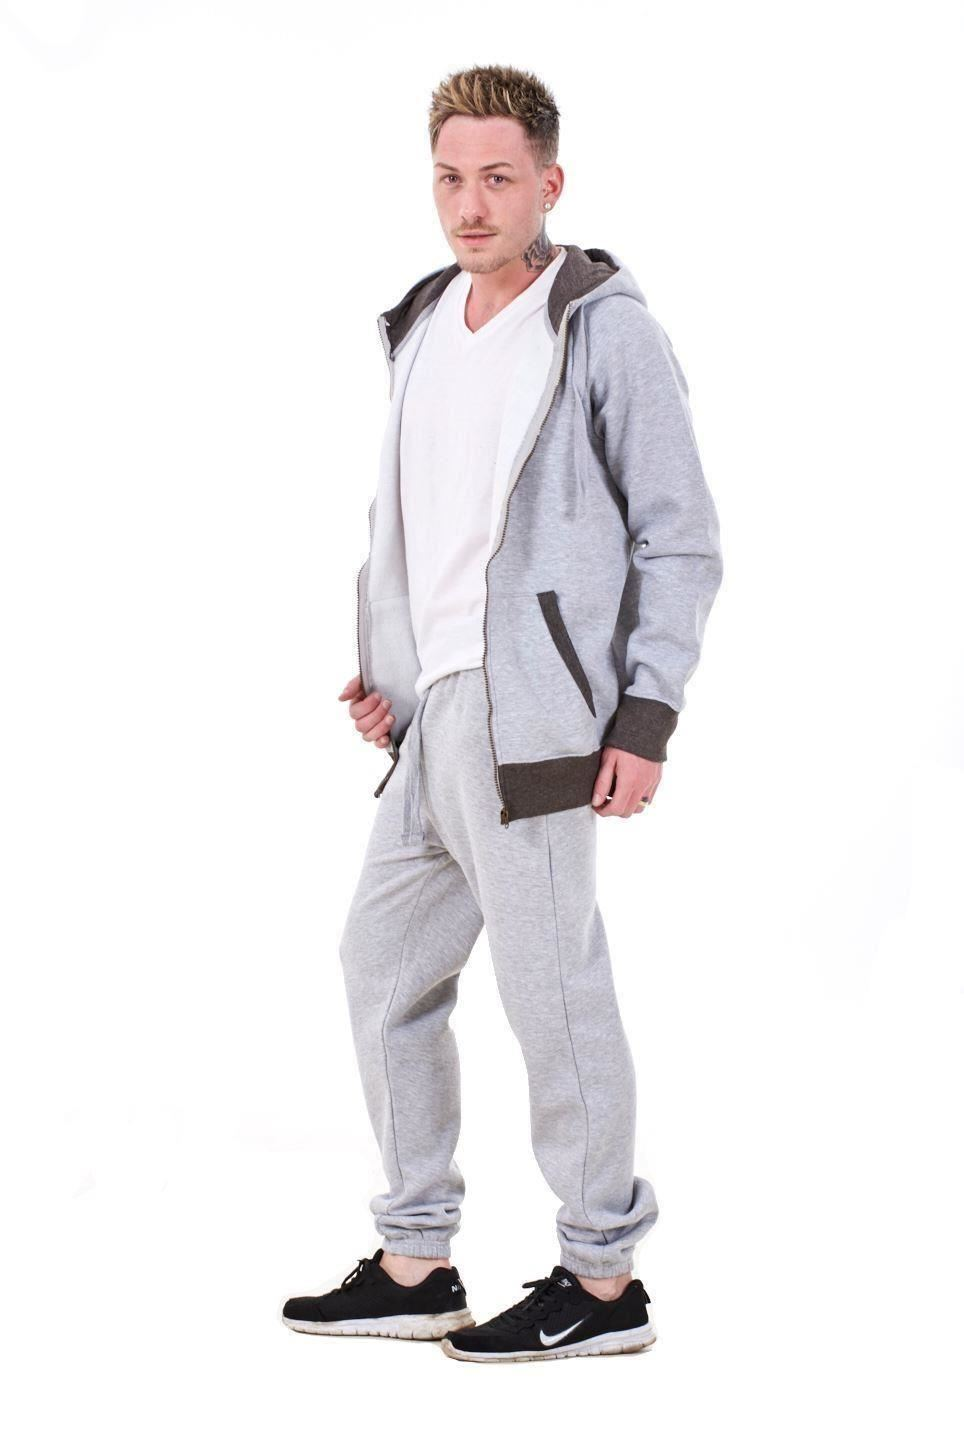 New-Mens-Tracksuit-Branded-Fleece-Hooded-Zipper-Cotton-Jogging-Bottoms-S-to-XXL thumbnail 9